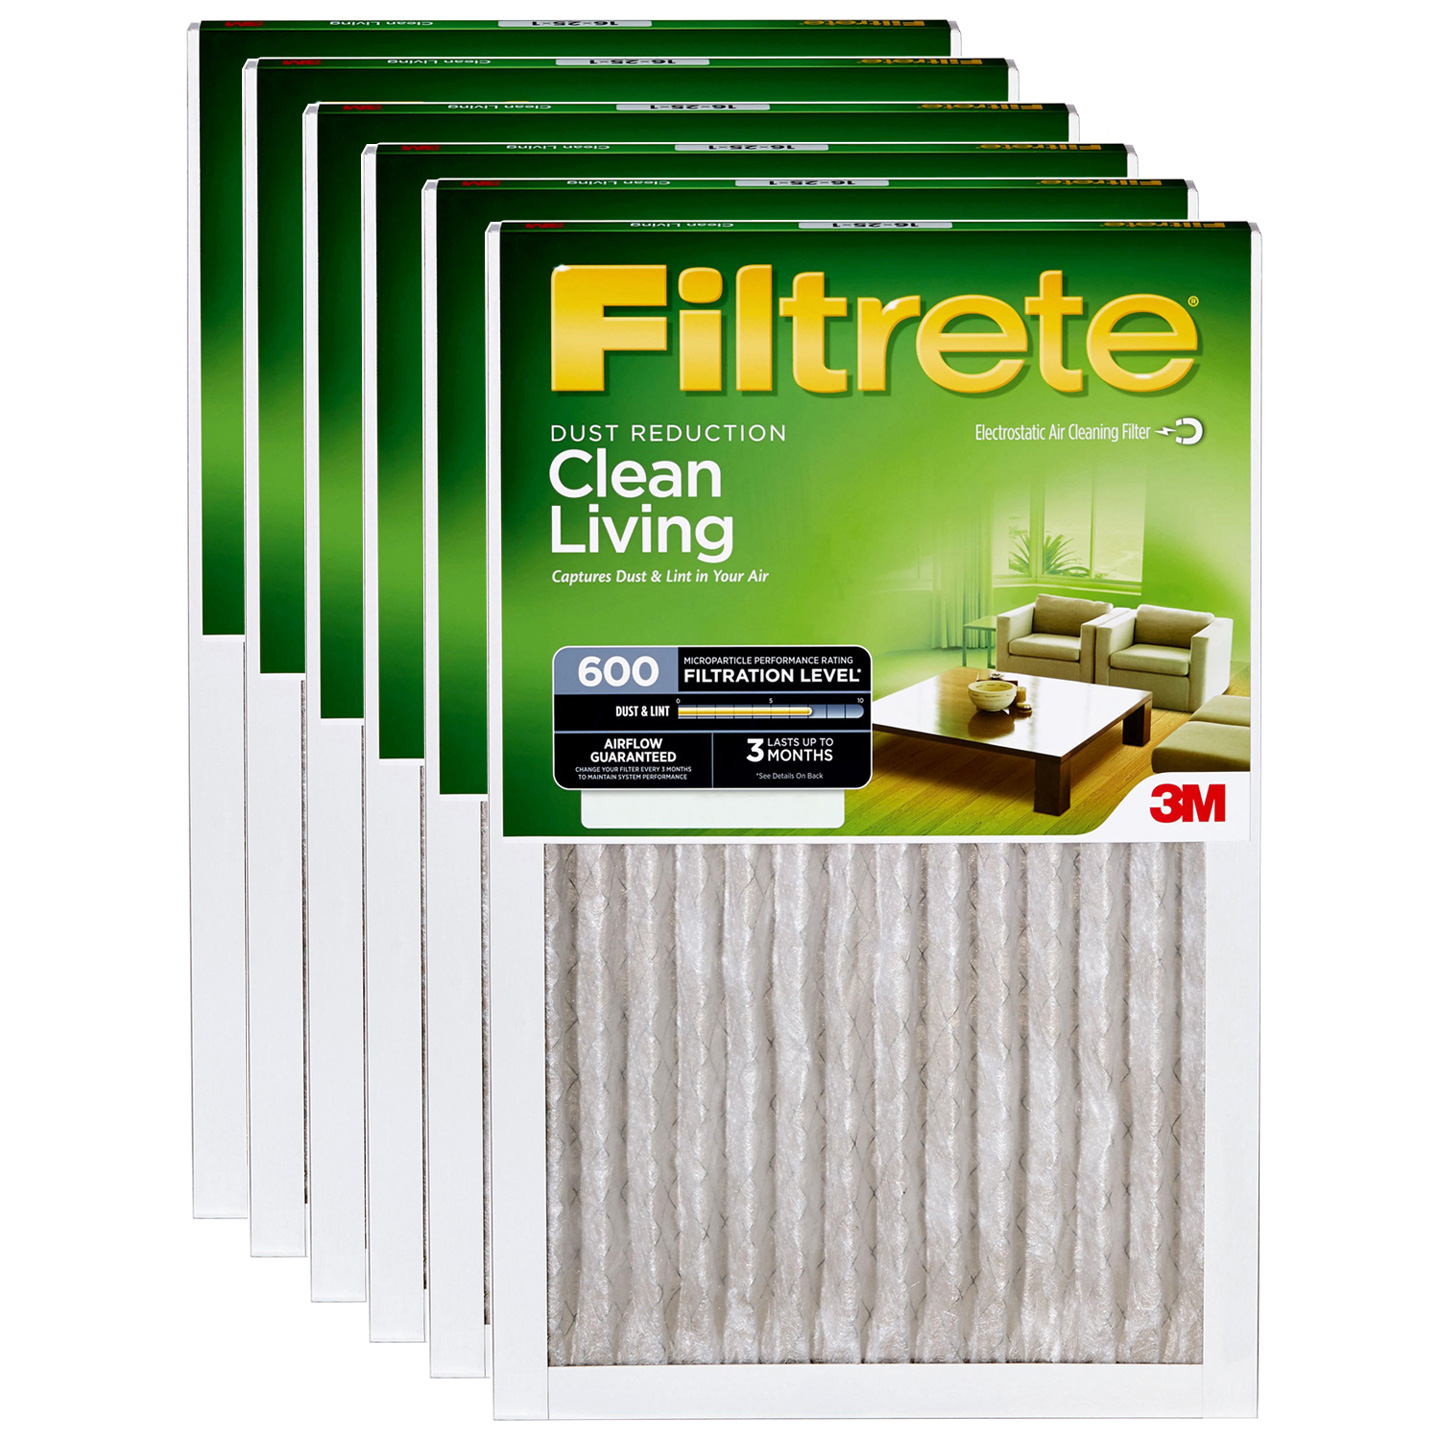 14x25x1 3M Filtrete Dust and Pollen Filter (6-Pack) FILTRETE_DUST_14x25x1_6_PACK